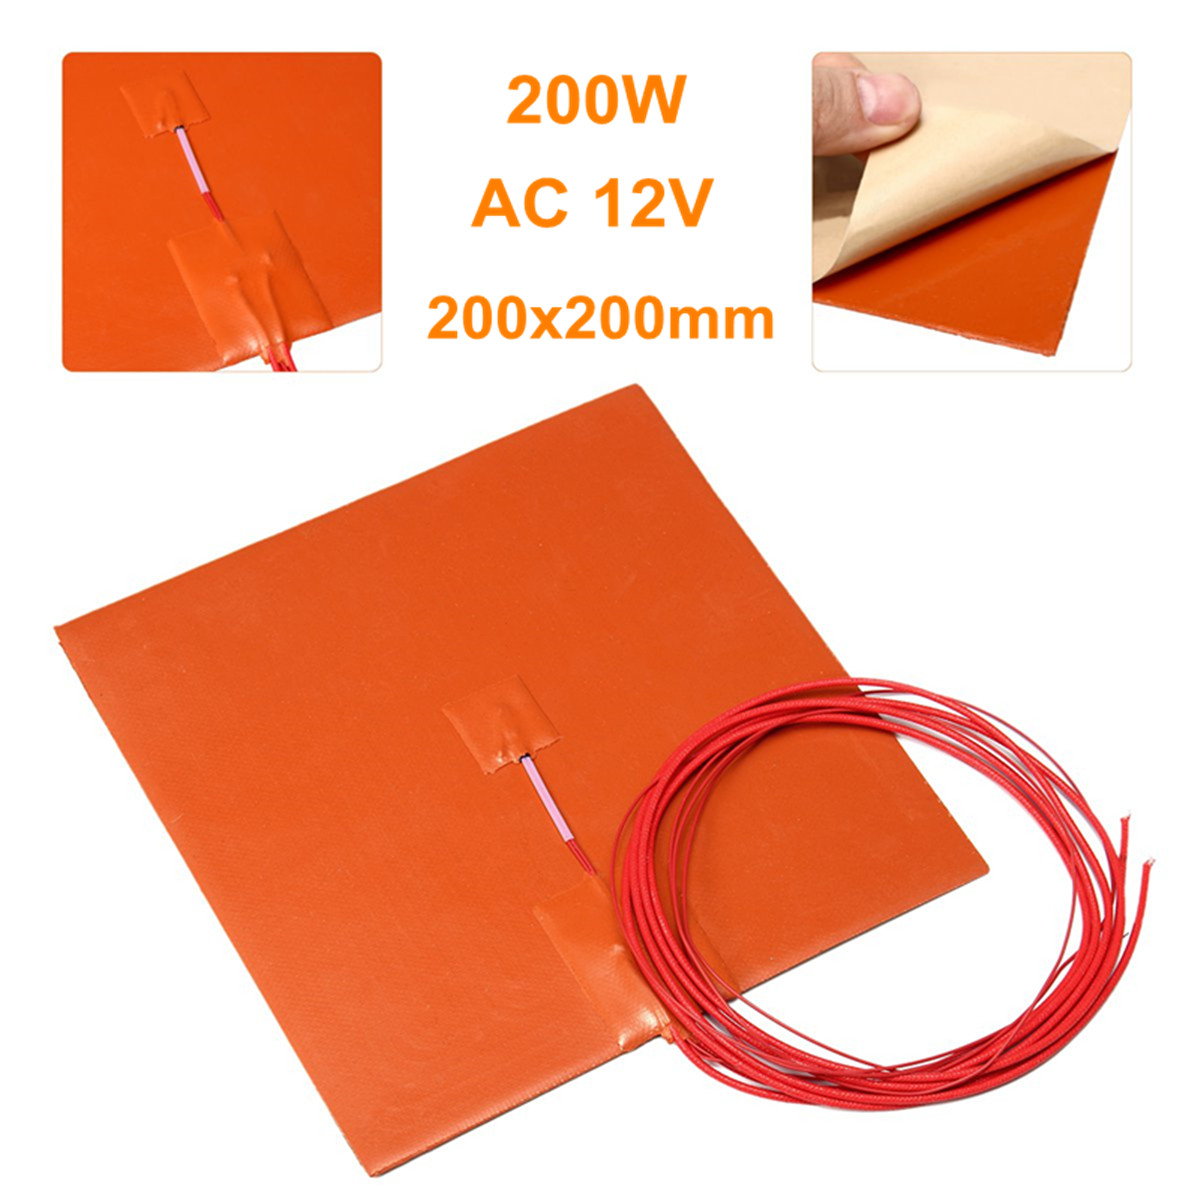 200W 12V AC Flexible Waterproof Silicon Heater Pad Wire Electric Heating Pads For 3D Printer Part Heated Bed Heating Mat 20x20cm